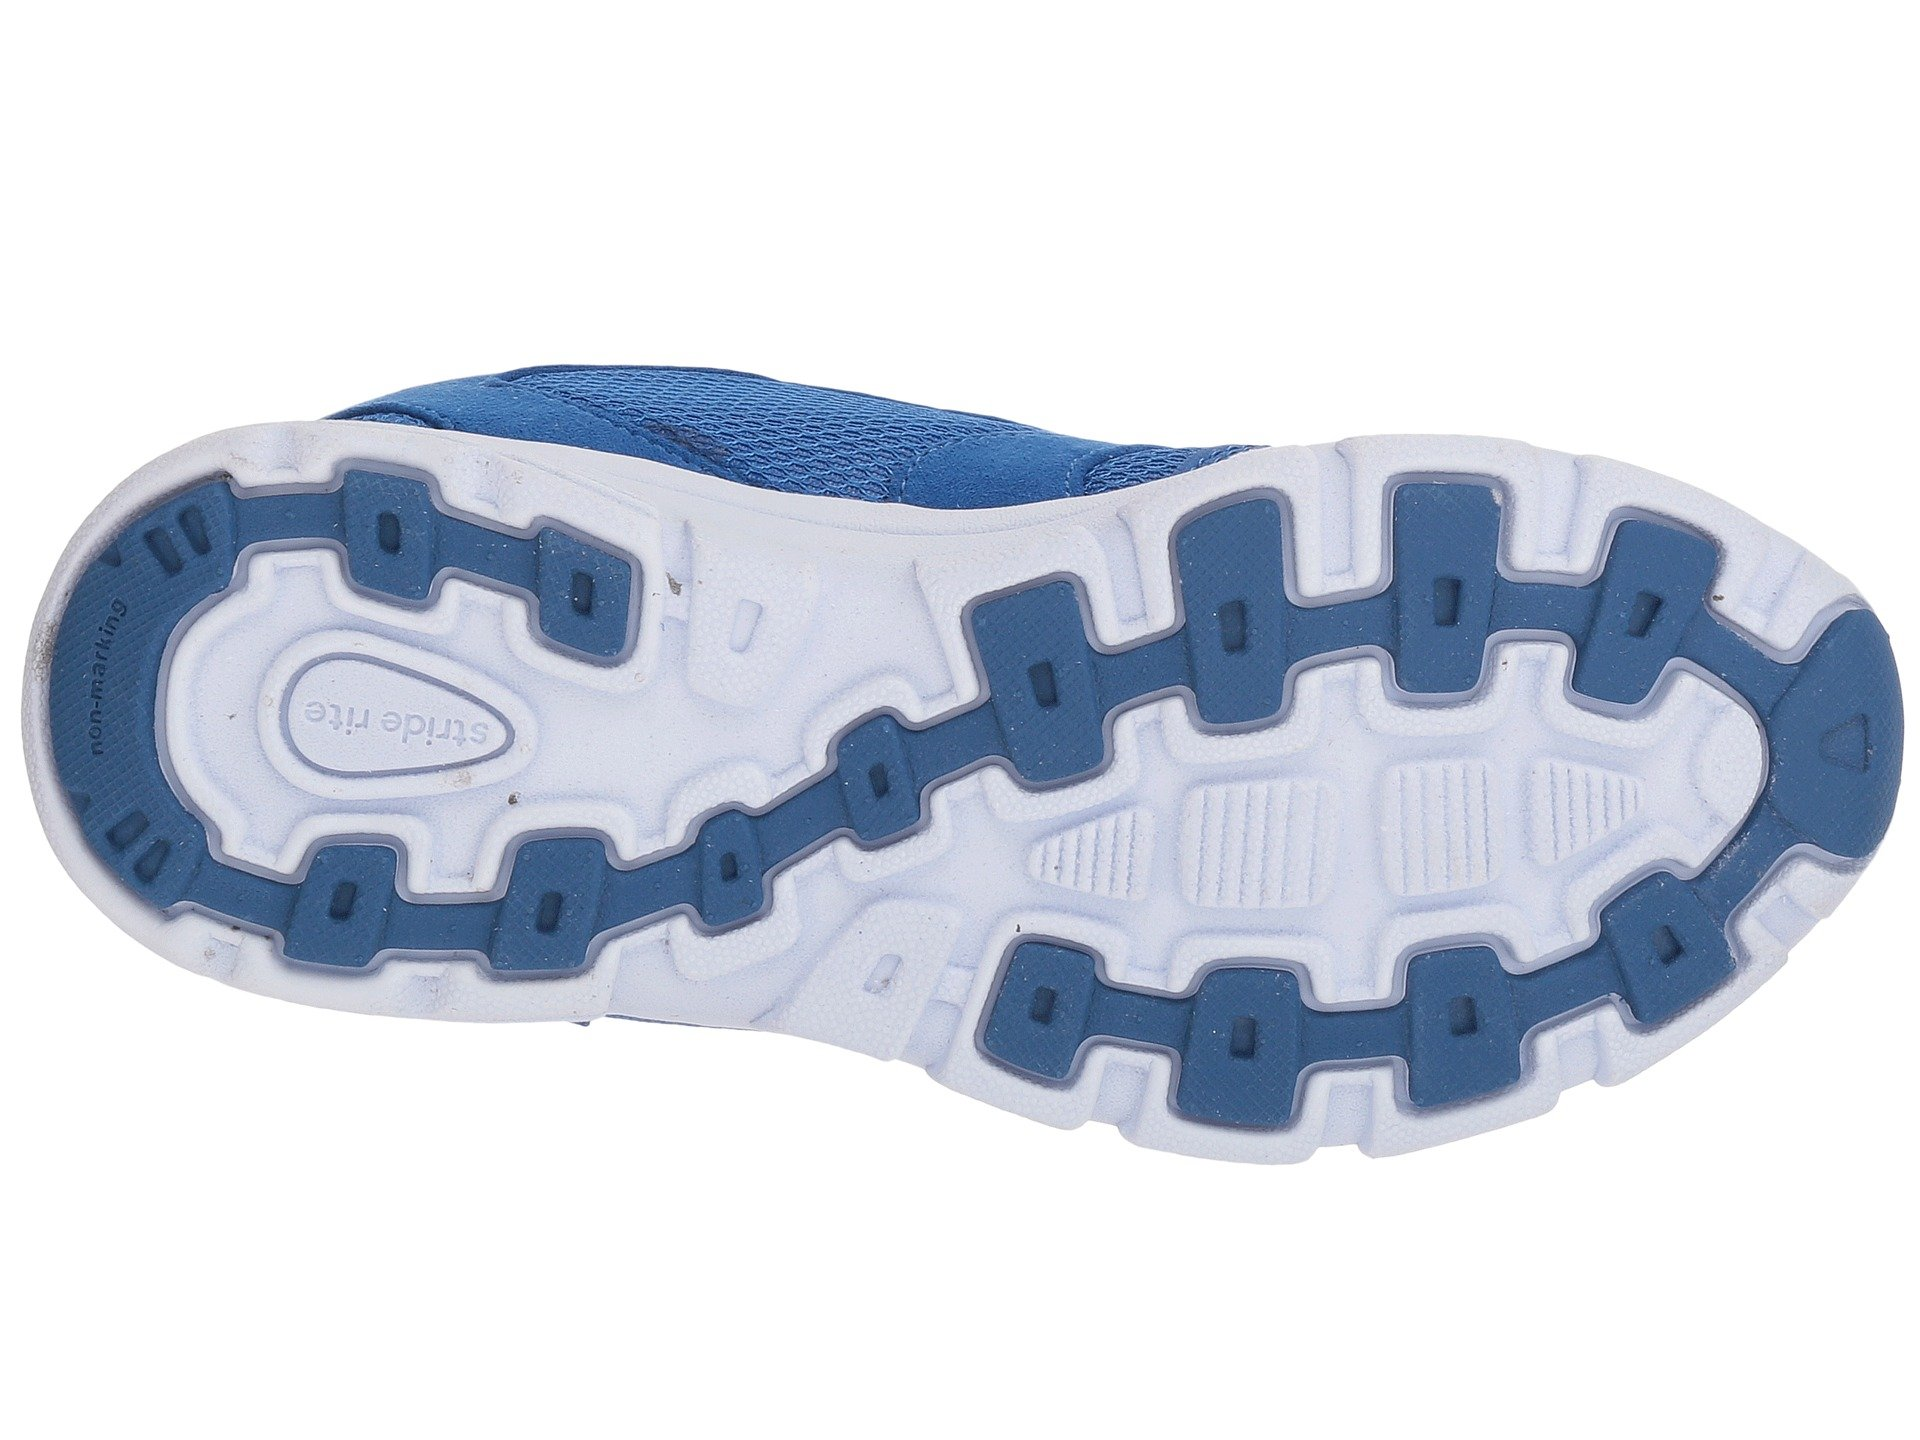 Stride Rite Mens Made 2 Play Taylor (Toddler/Little Kid) Royal 5.5 Toddler M by Stride Rite (Image #4)